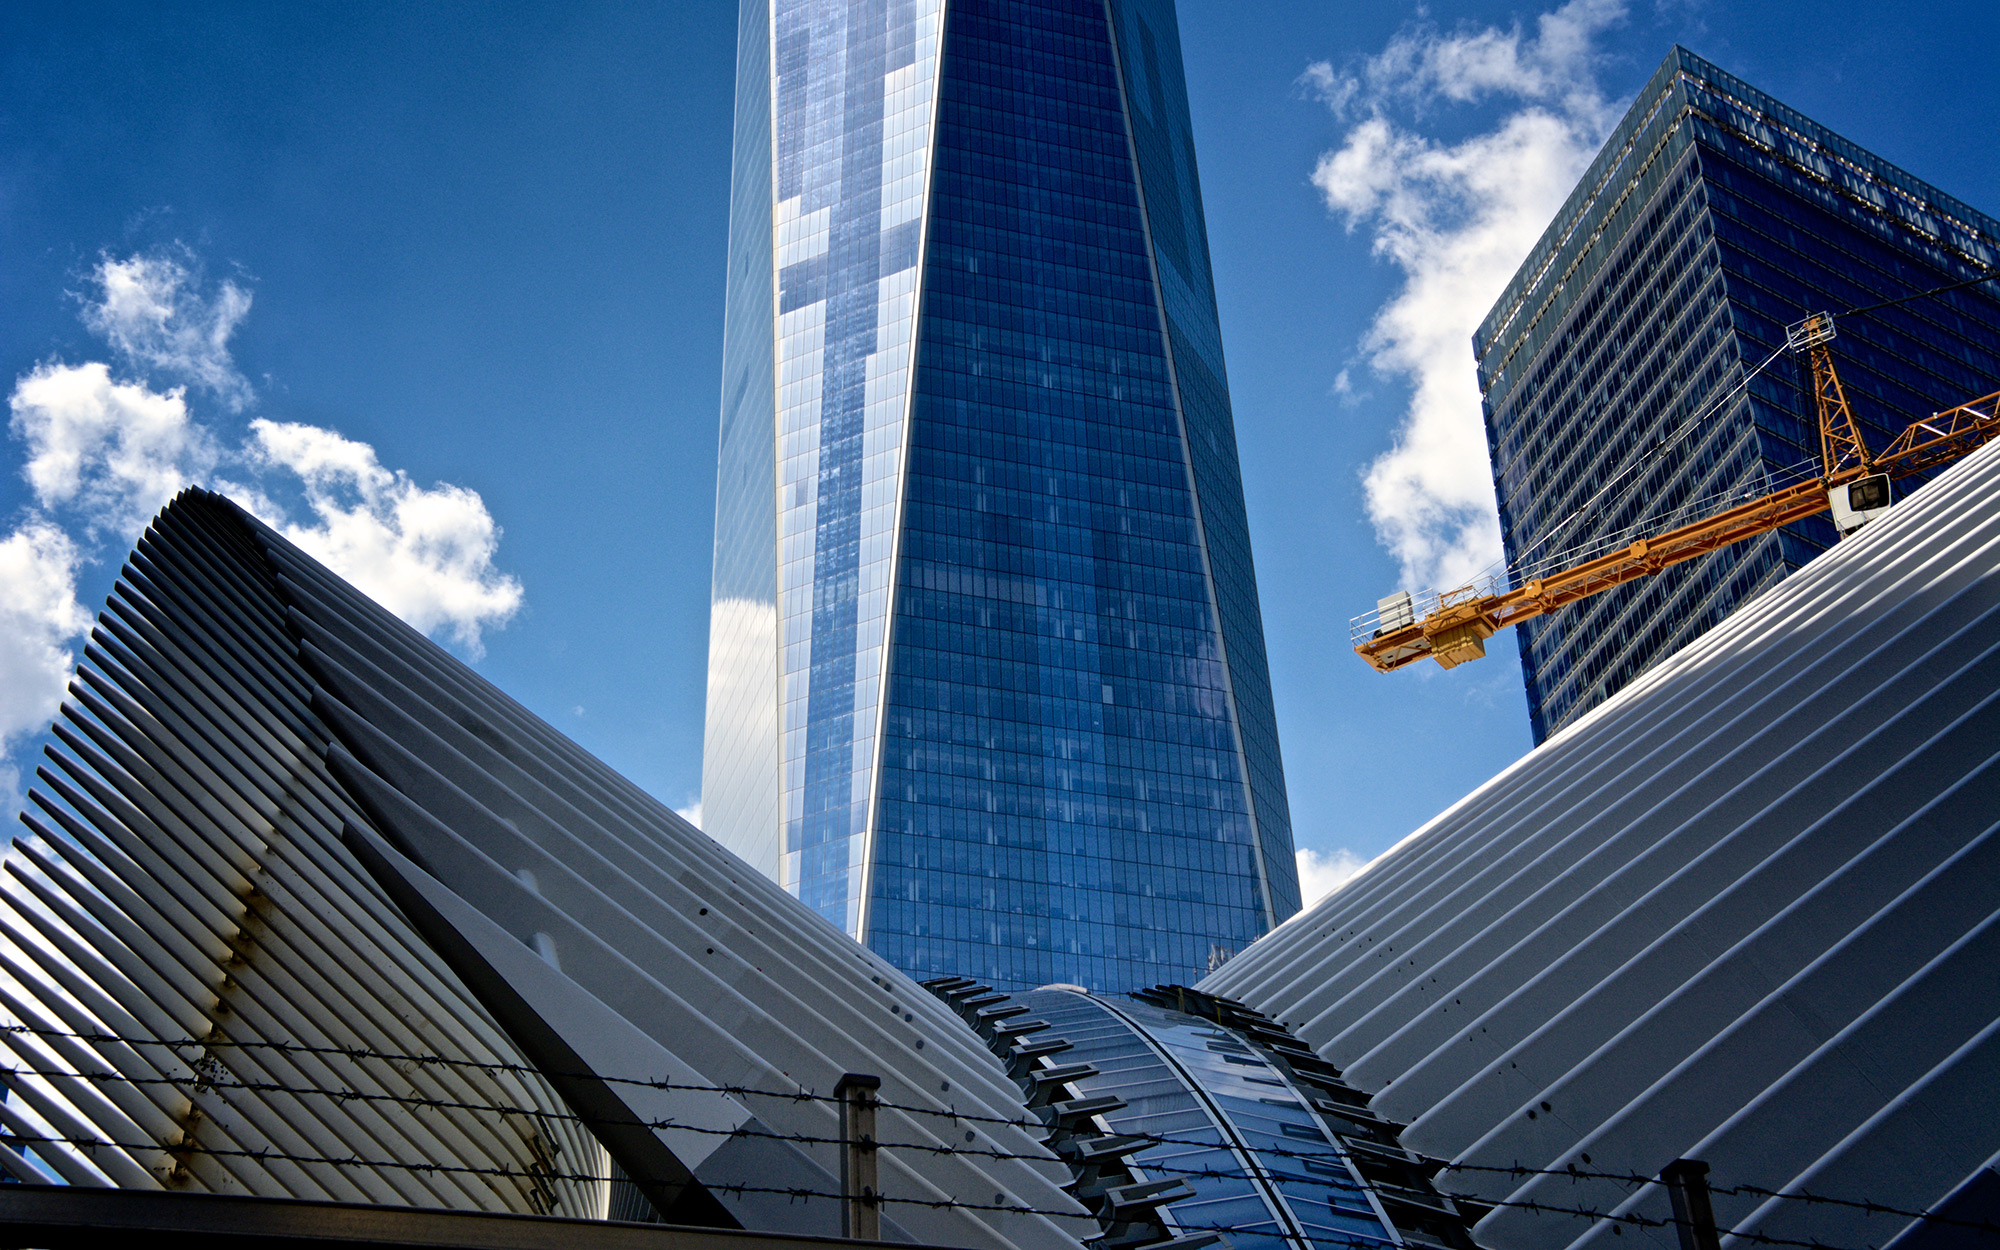 The World Trade Center Oculus is Set to Open in March